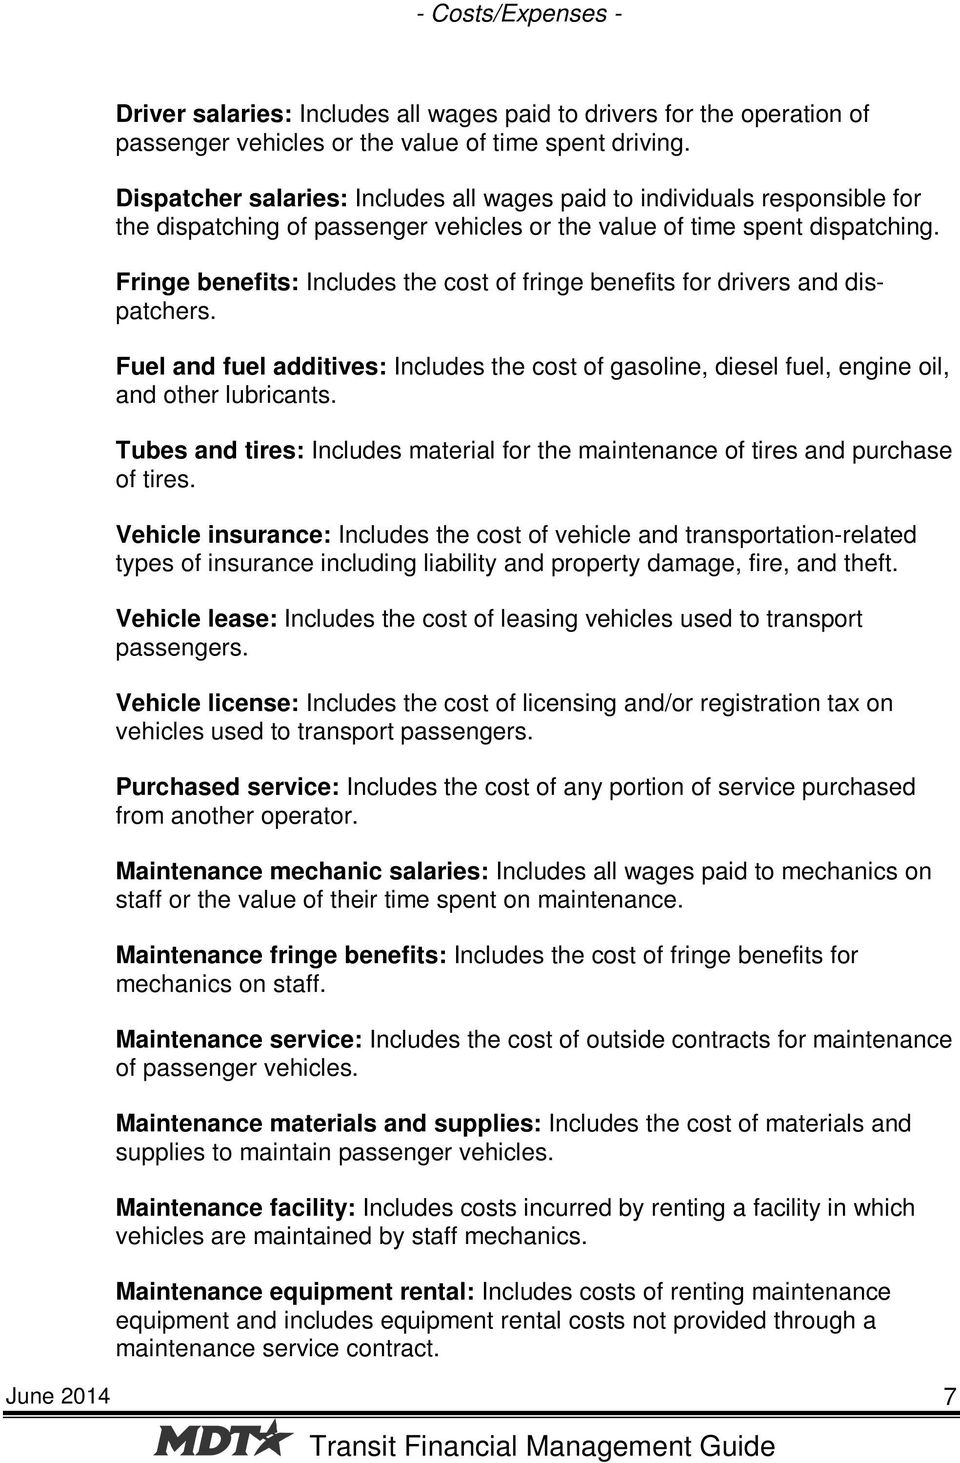 Fringe benefits: Includes the cost of fringe benefits for drivers and dispatchers. Fuel and fuel additives: Includes the cost of gasoline, diesel fuel, engine oil, and other lubricants.